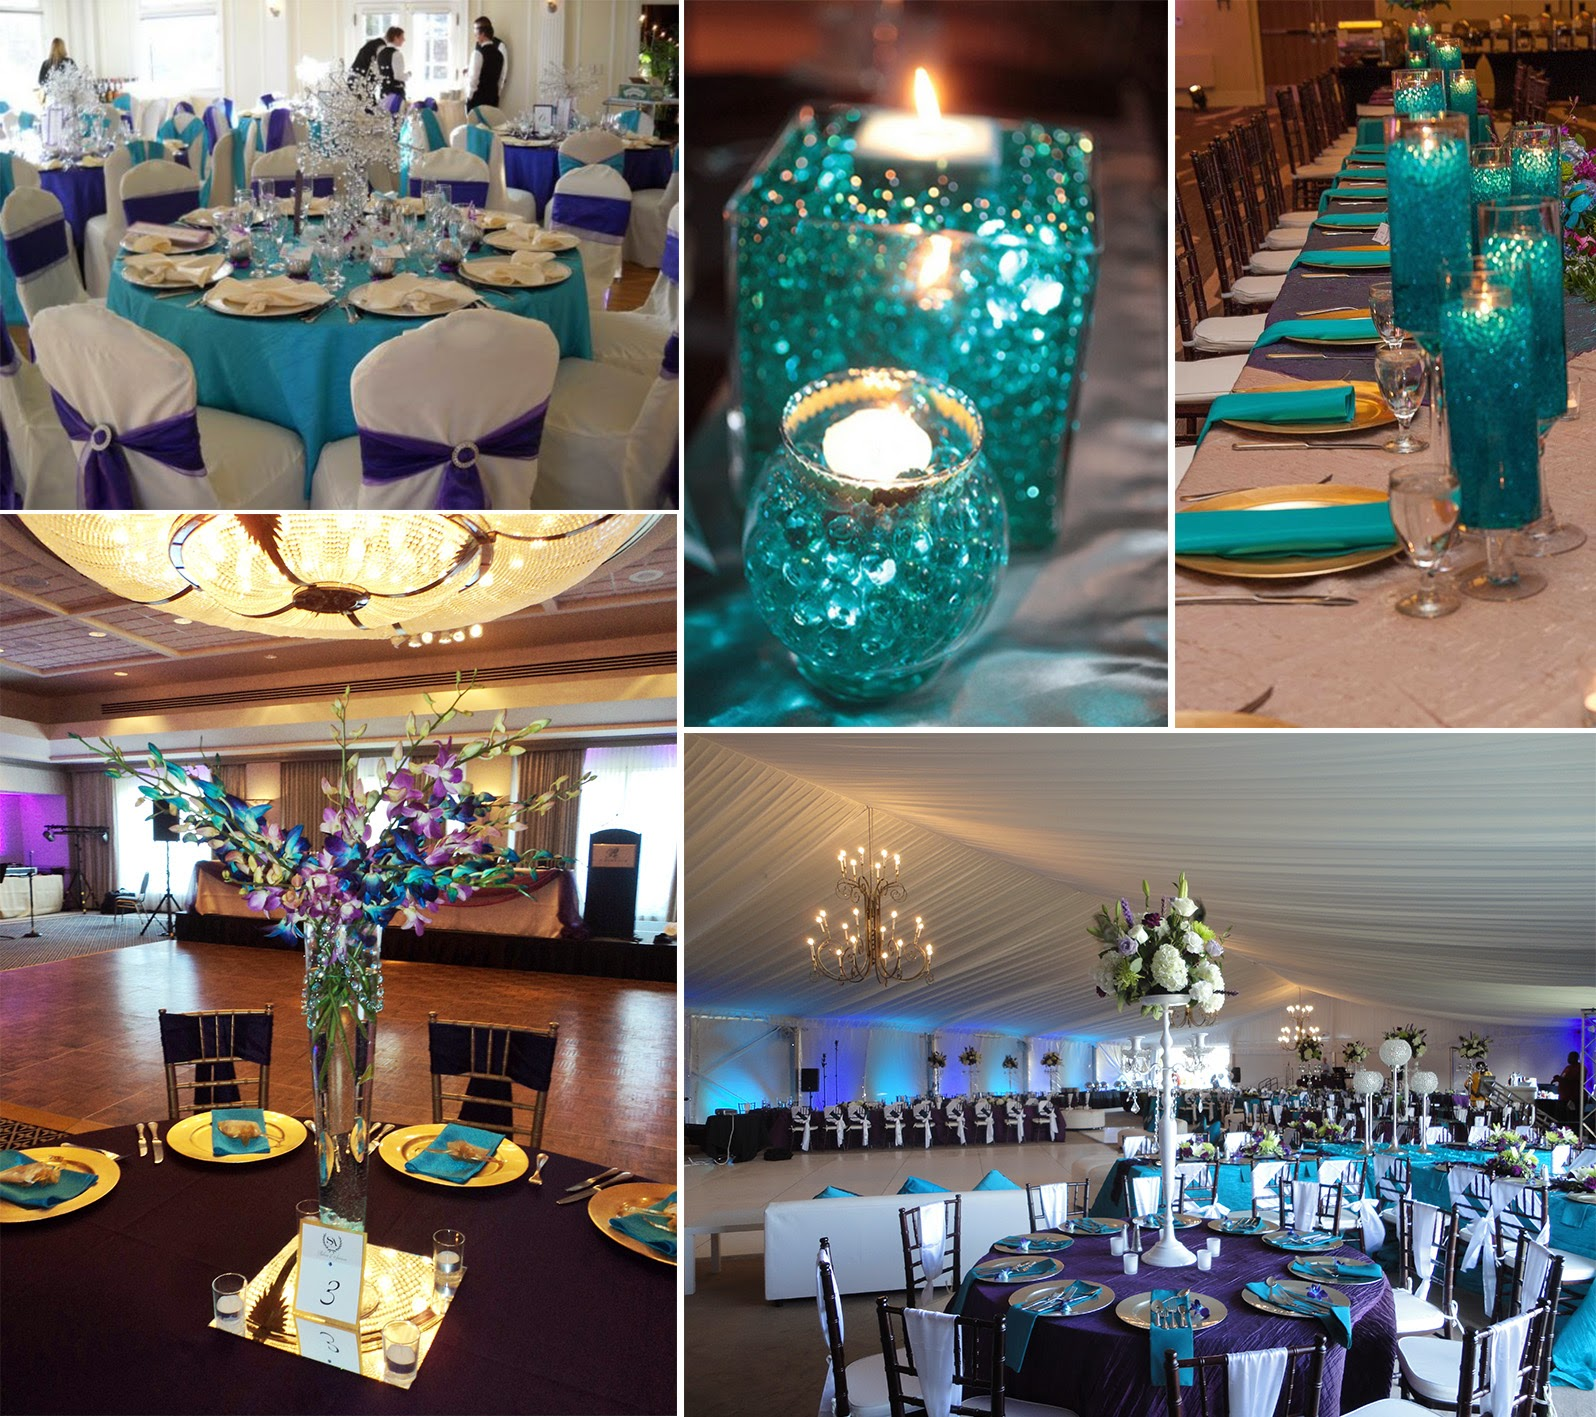 prom dress: Best ideas for purple and teal wedding